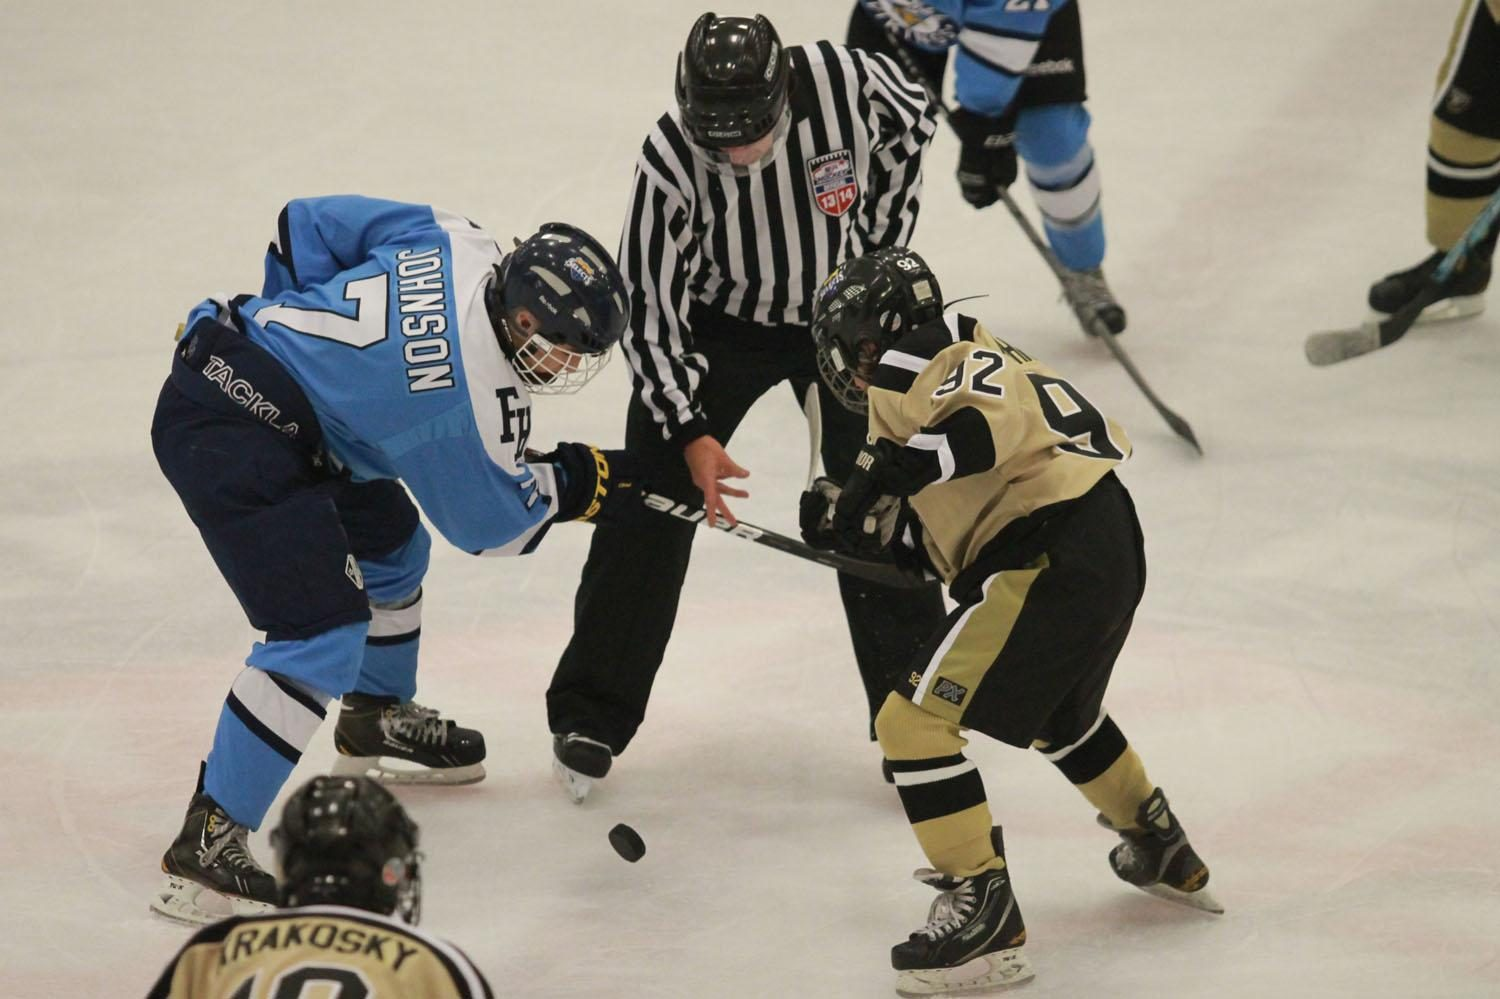 11-2 V Hockey Vs. Howell [Photo Gallery]